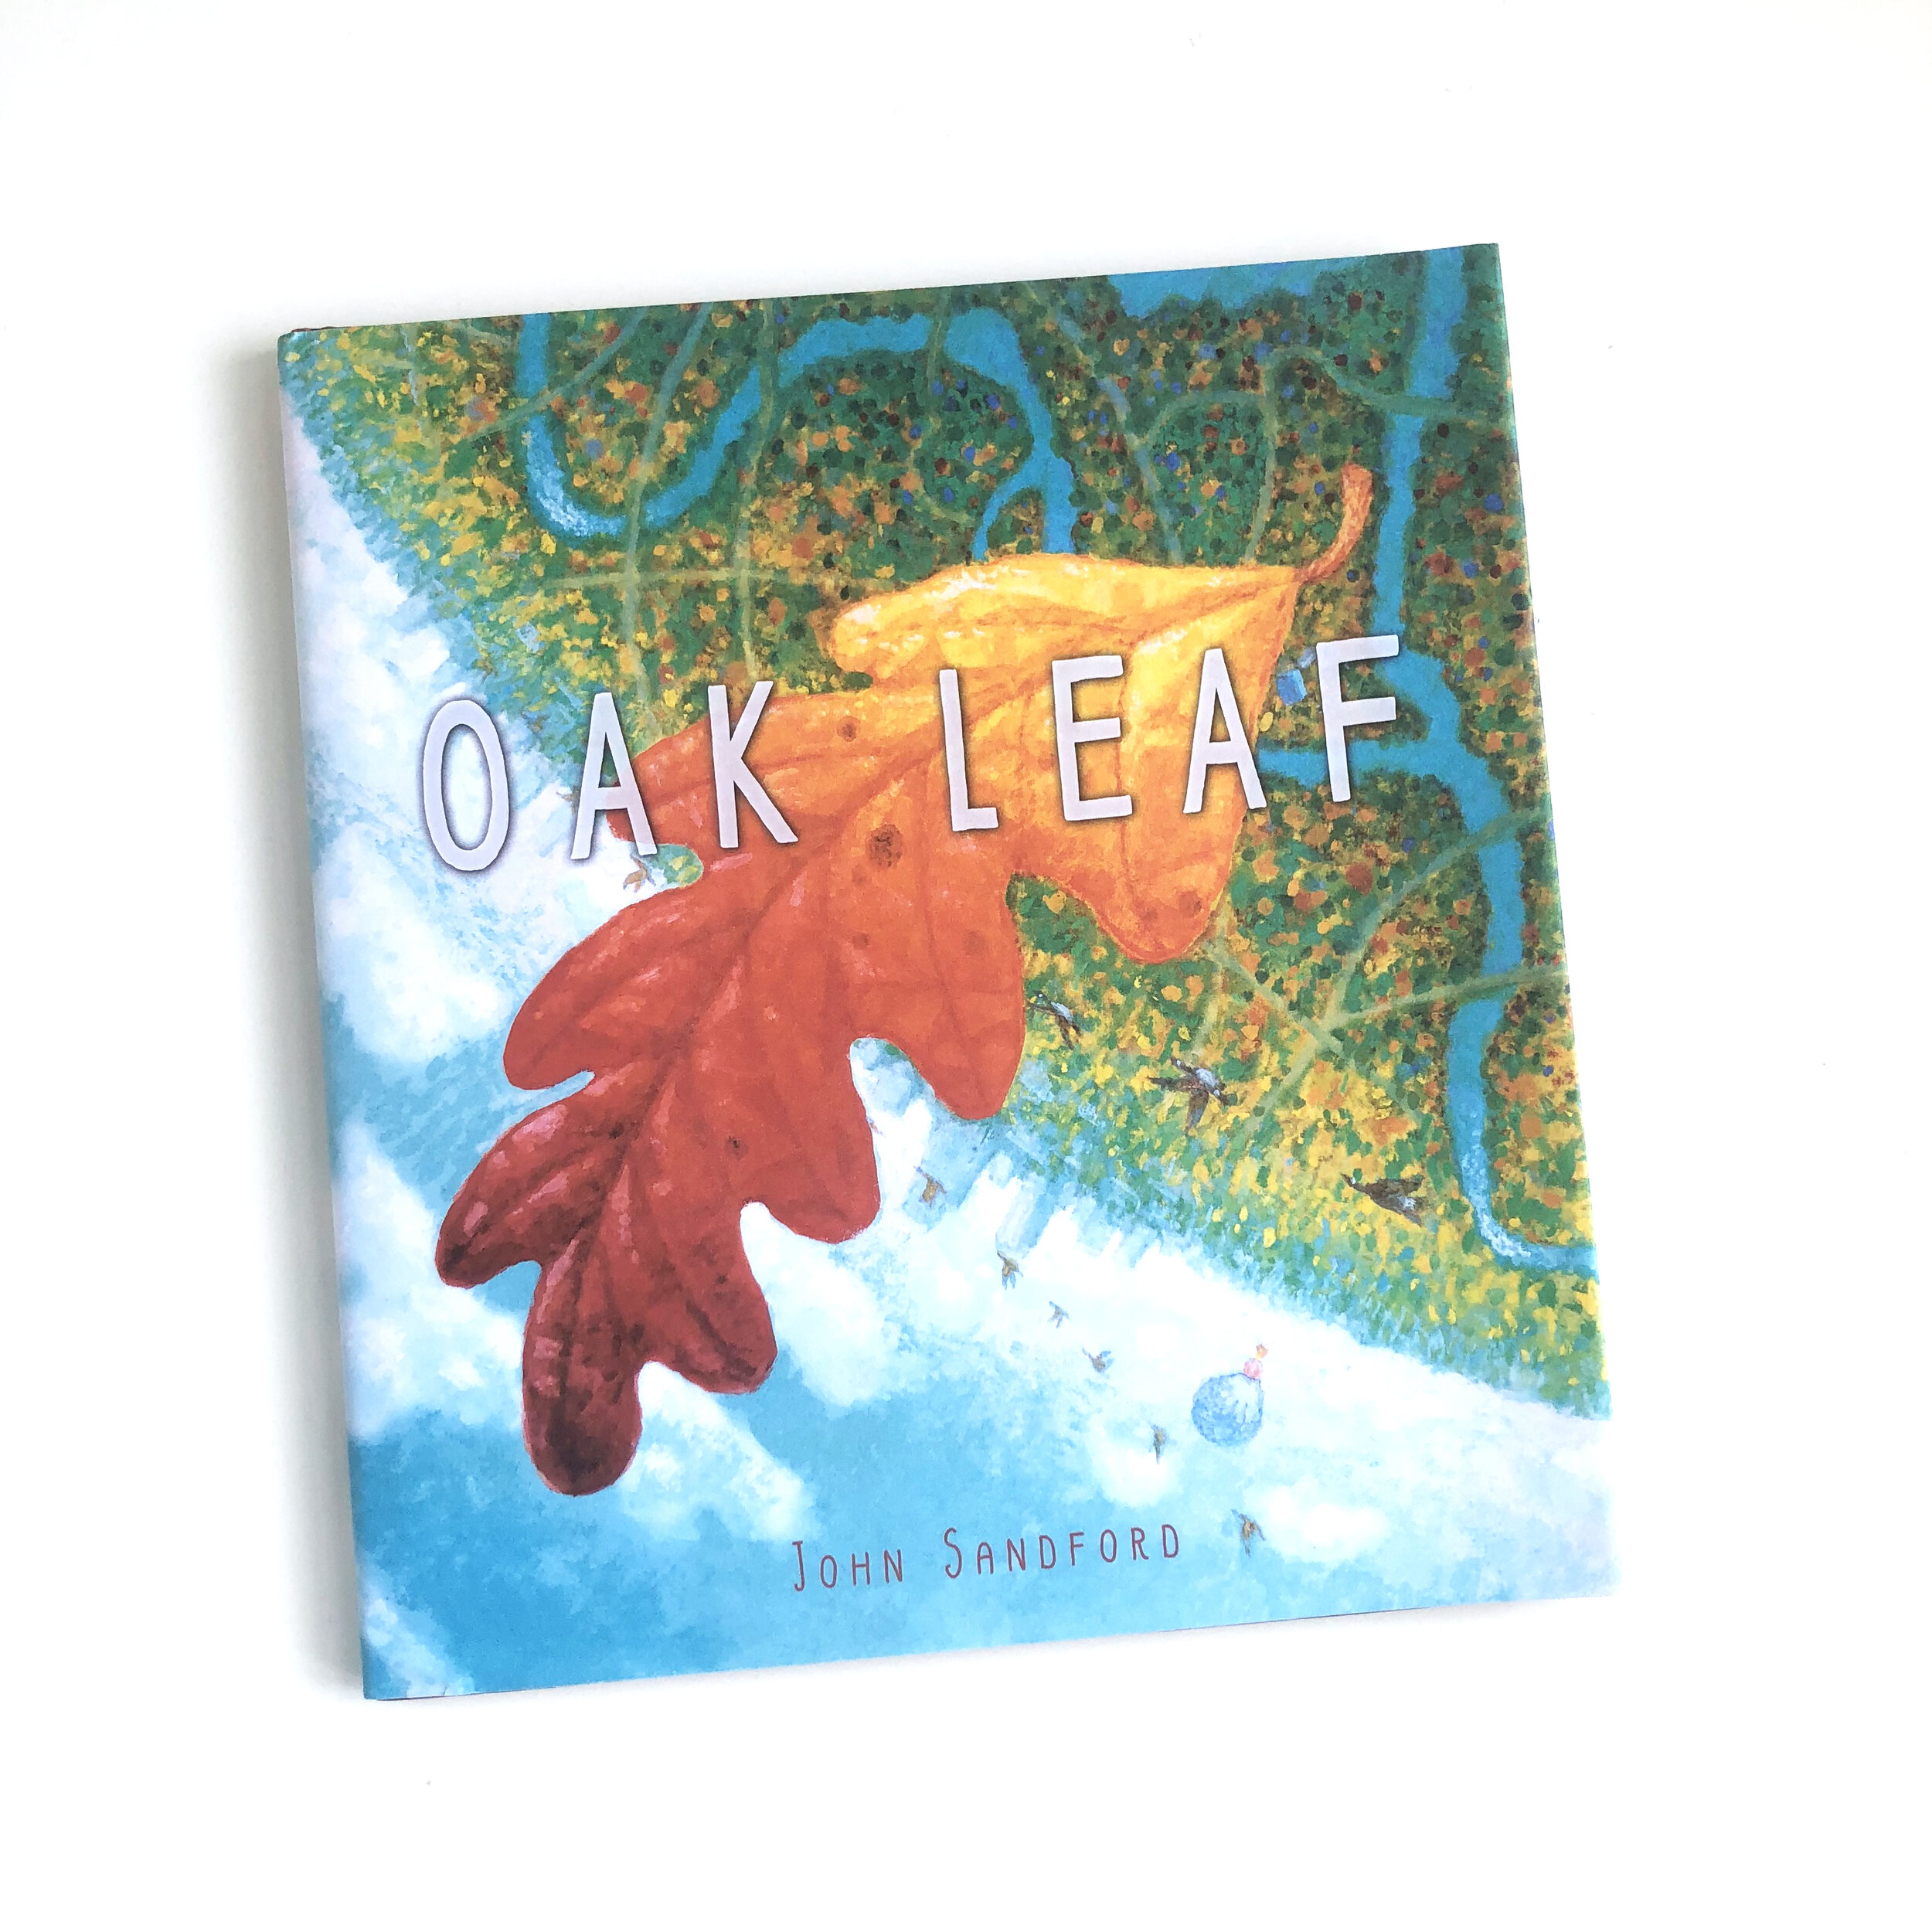 """""""Autumn arrived quietly so no one would notice. But the trees knew."""" So begins this gently moving ode to the change in seasons. Rich illustrations dapple light through each spread, sweeping across images as we travel with an oak leaf over a farm, through varied landscapes, into the city's swirl, and noticed by a child.   Oak Leaf     is such a fitting fall read."""